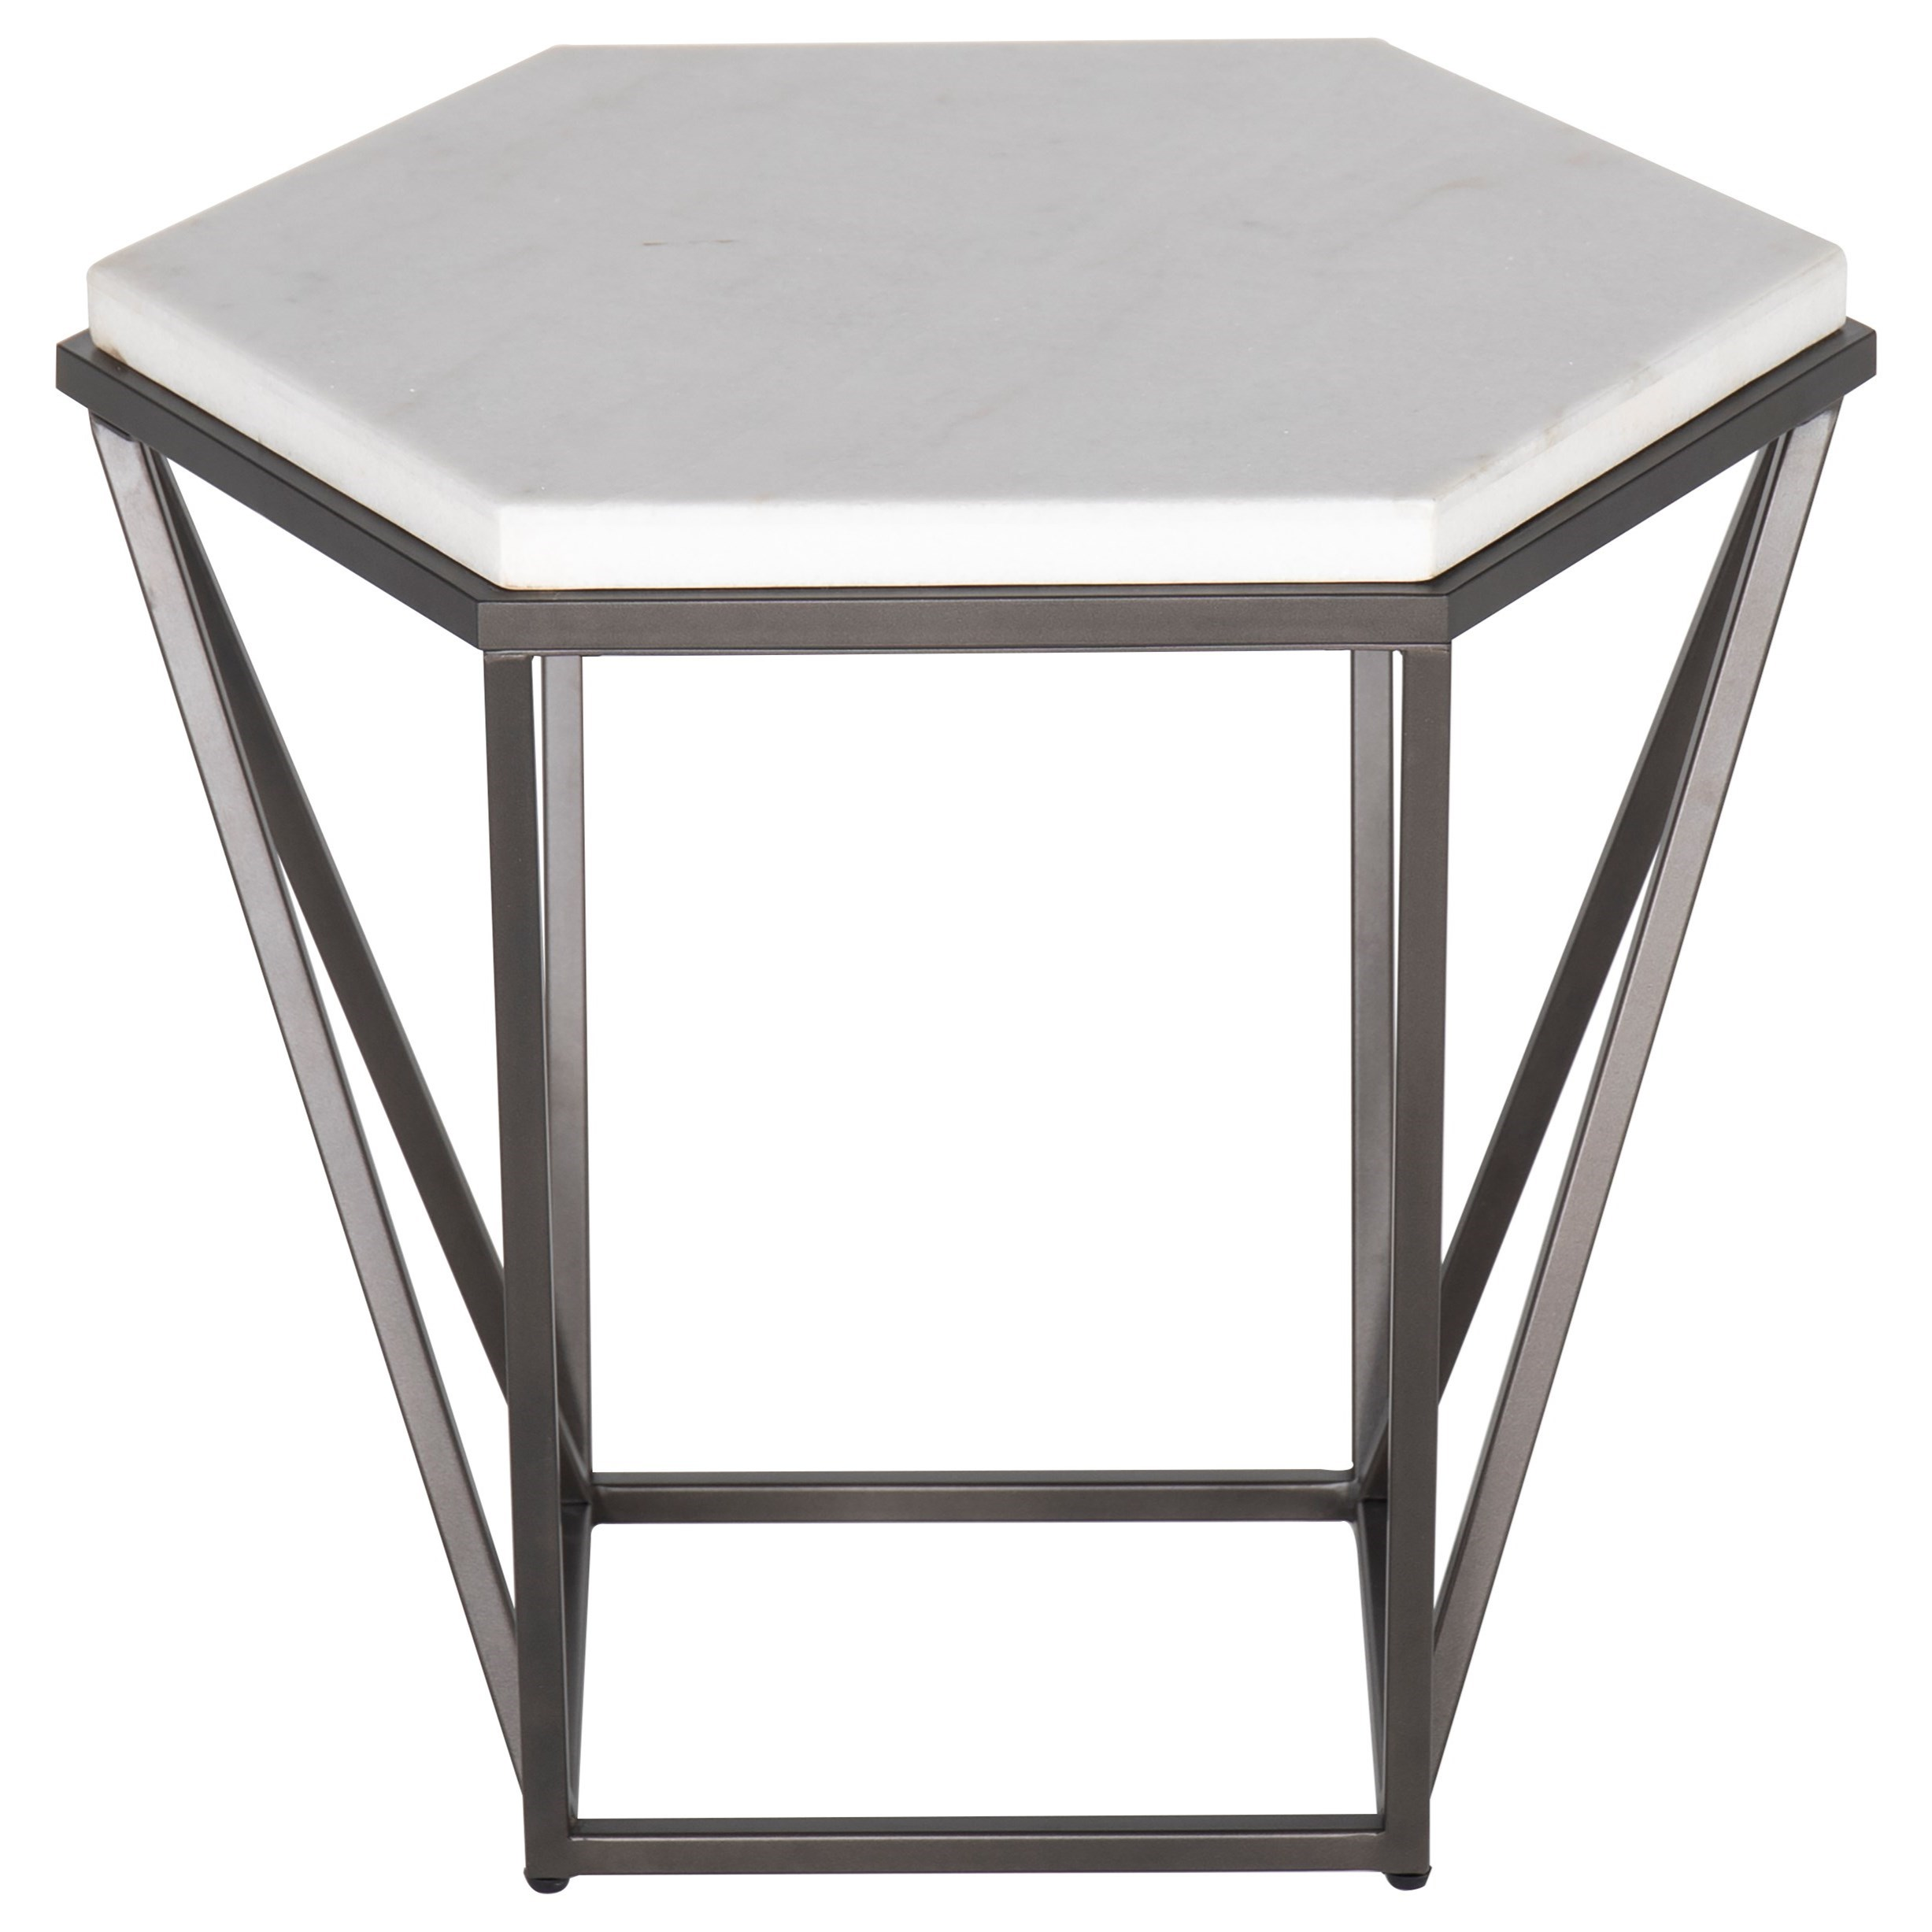 Corvus End Table by Steve Silver at Northeast Factory Direct